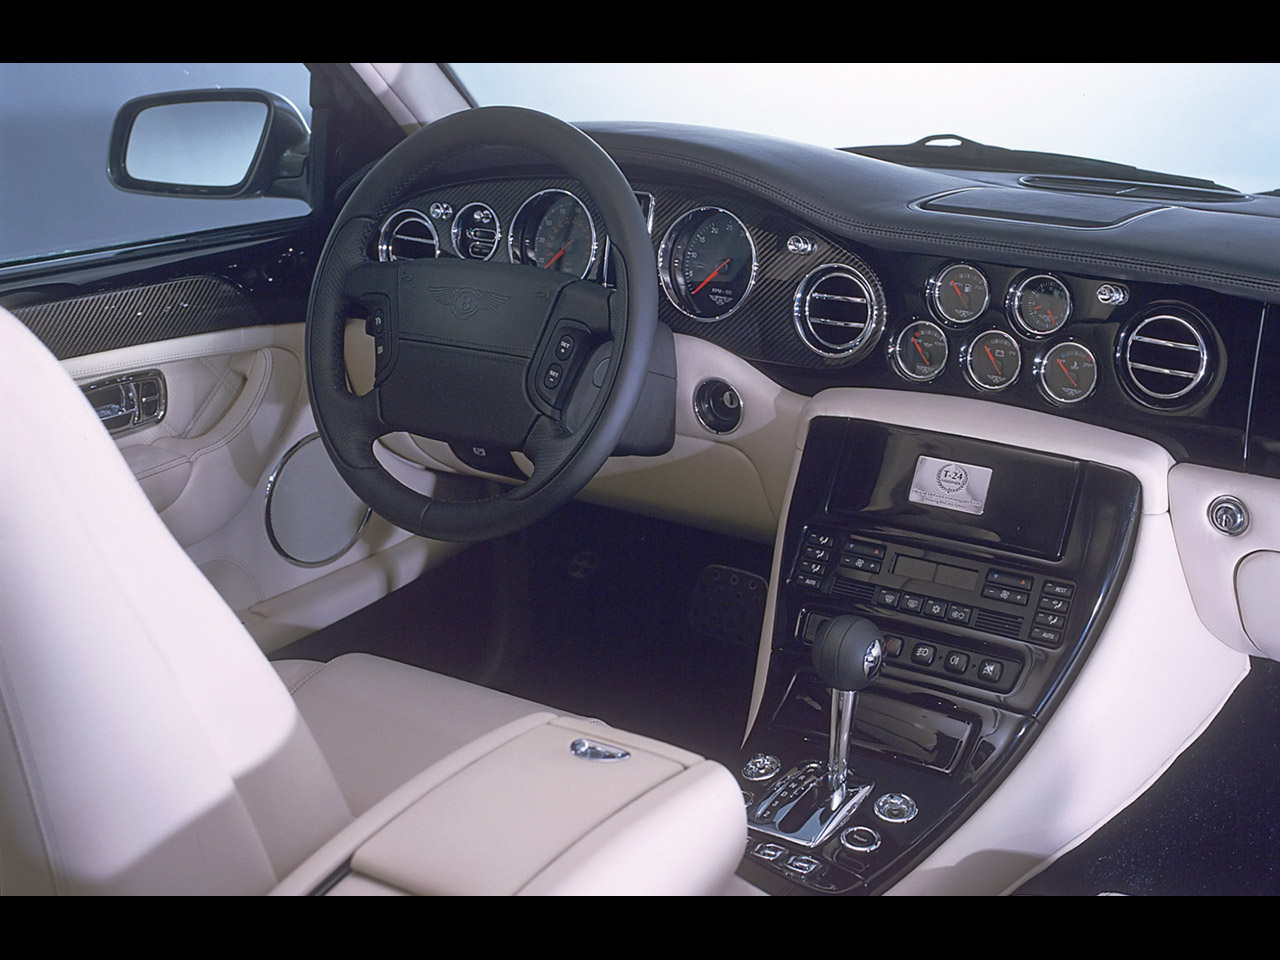 bentley arnage i 2002 images #13